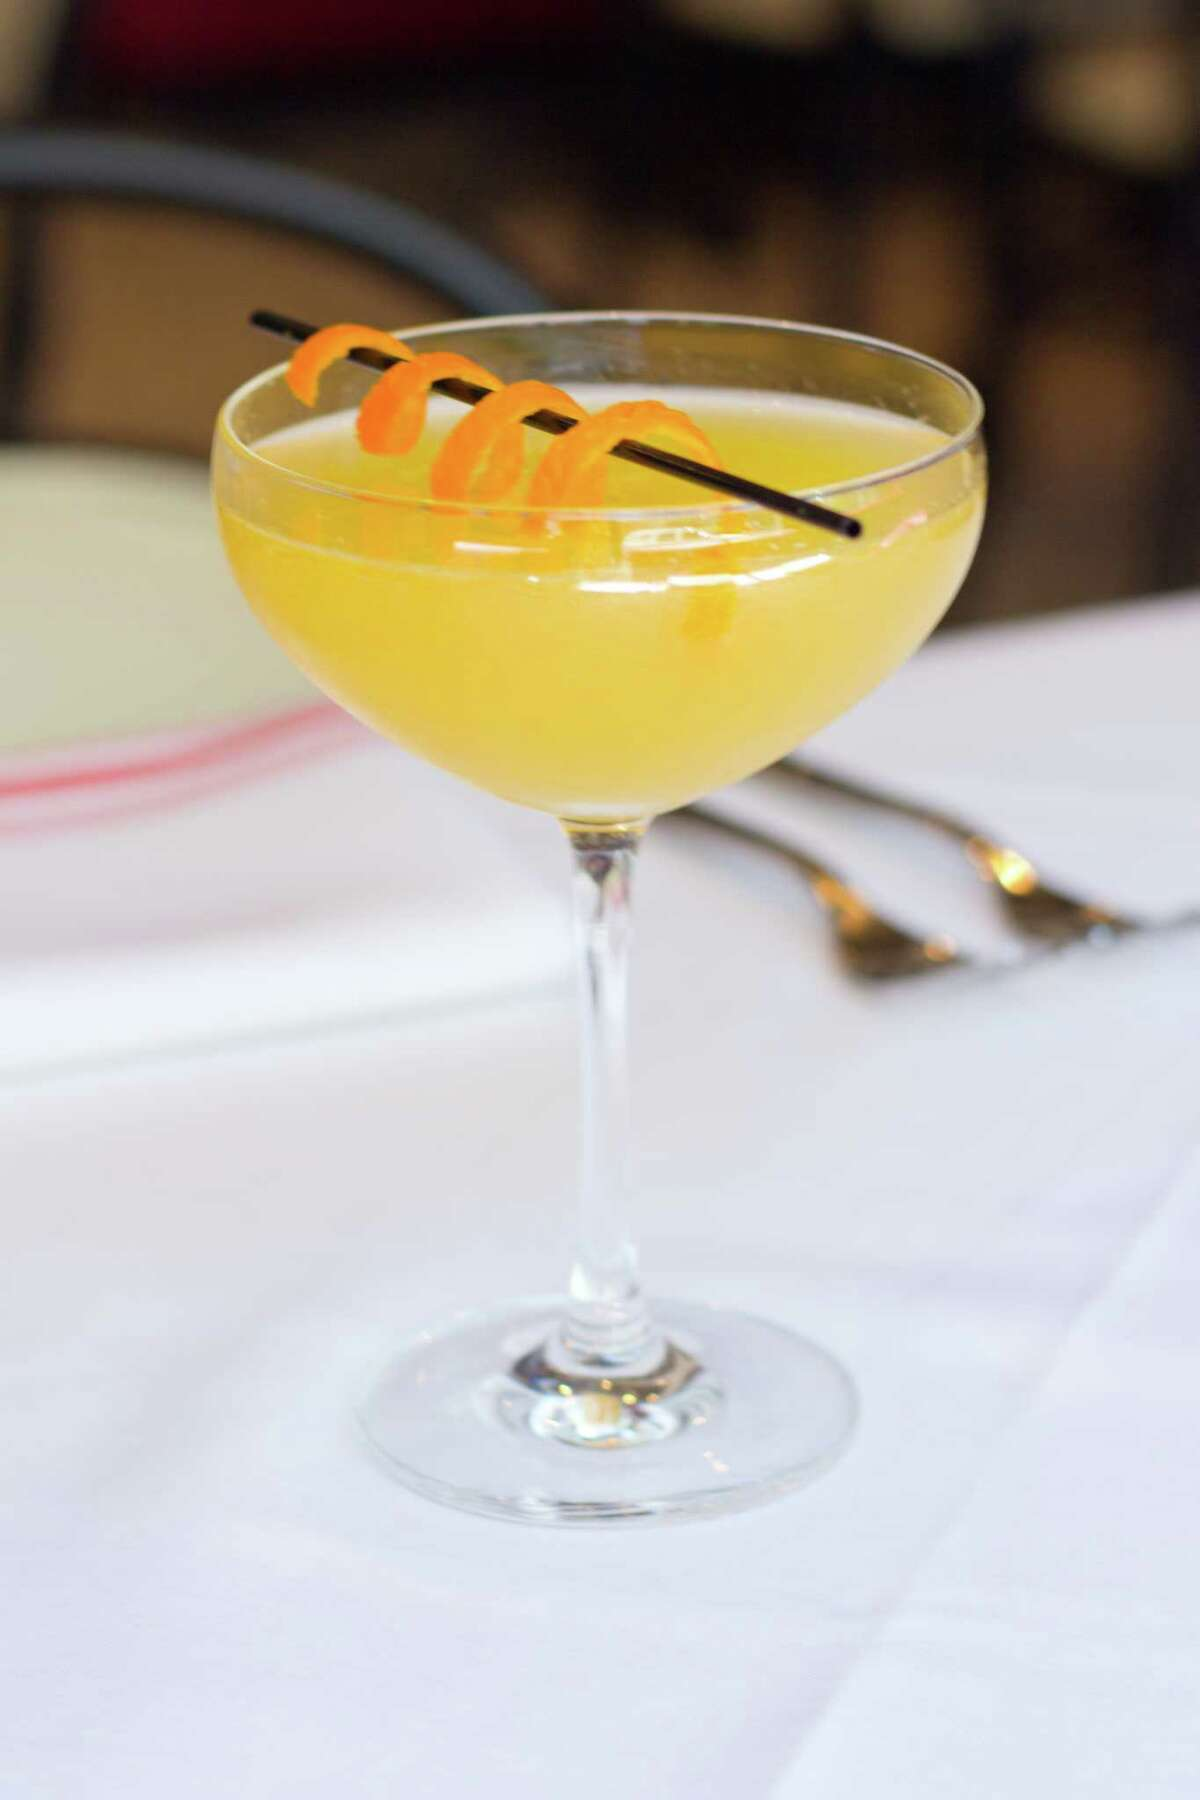 Peachy Keen is a cocktail made with Belvedere vodka, peach liqueur, lemon juice, basil, simple syrup and prosecco. It's among the new cocktails served at Toulouse restaurant in River Oaks District.